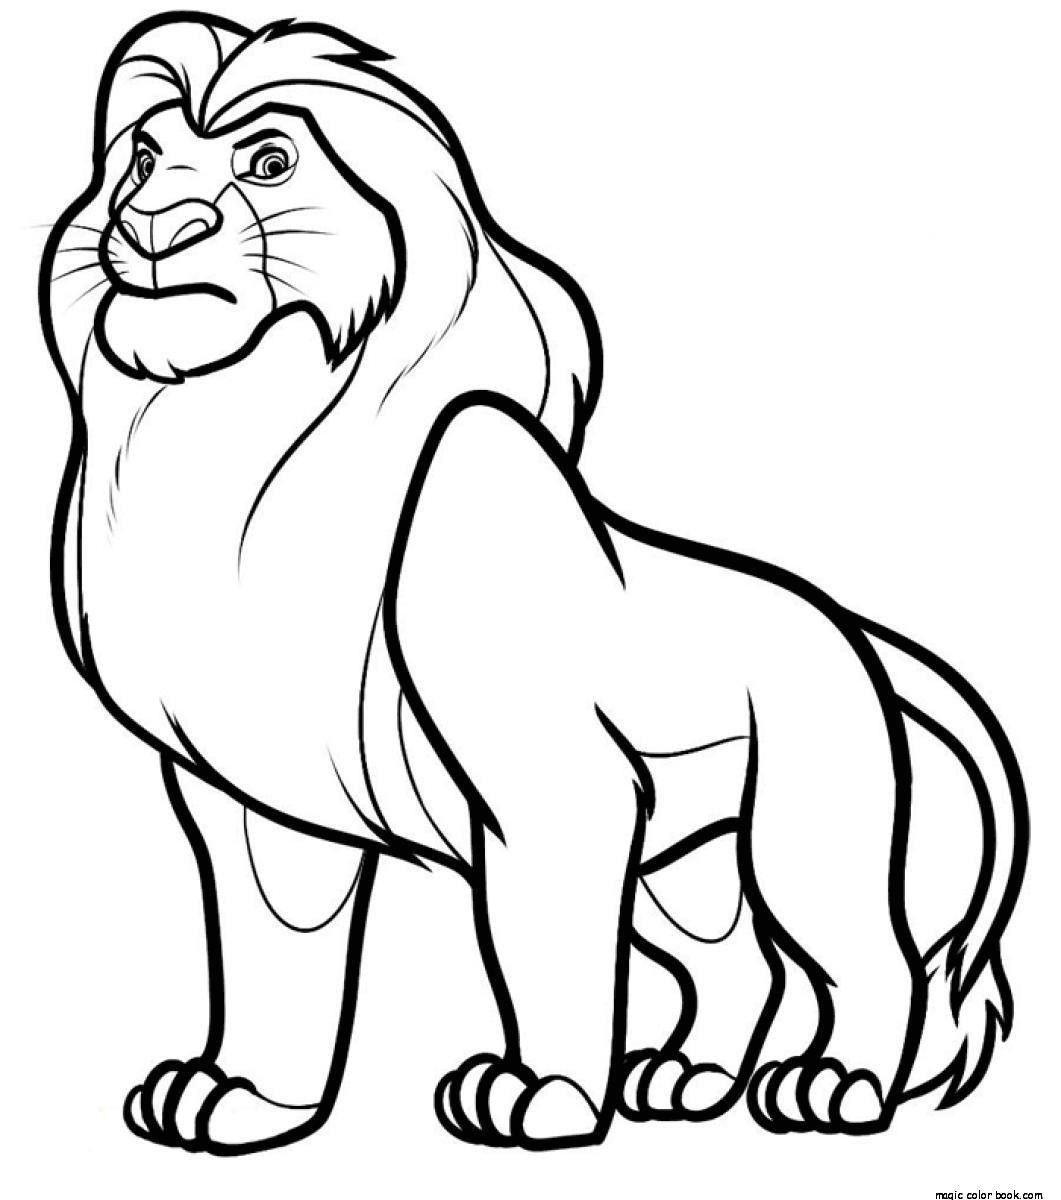 24 Brilliant Image Of Color Pages Online Davemelillo Com Lion Coloring Pages Disney Coloring Pages Cartoon Coloring Pages